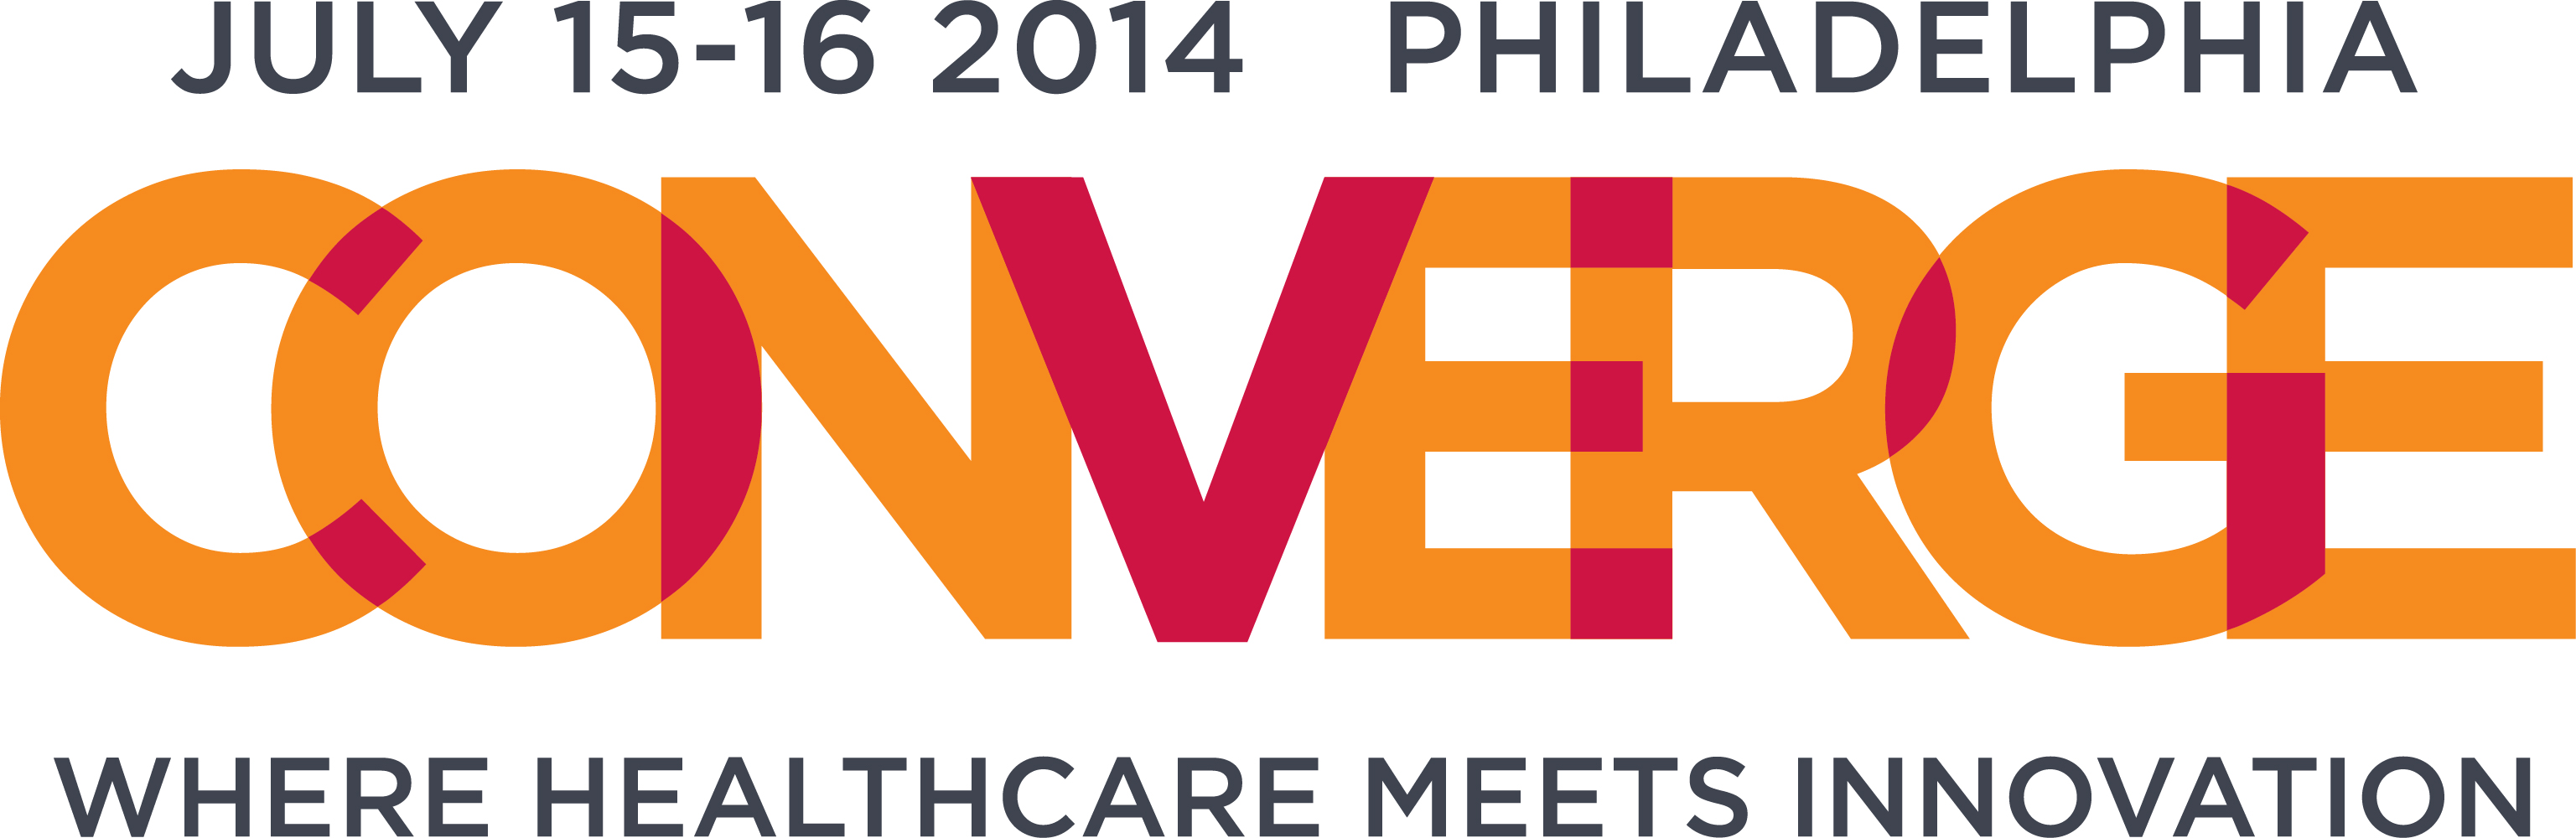 CONVERGE features 24 early-stage companies showcasing innovative digital health solutions